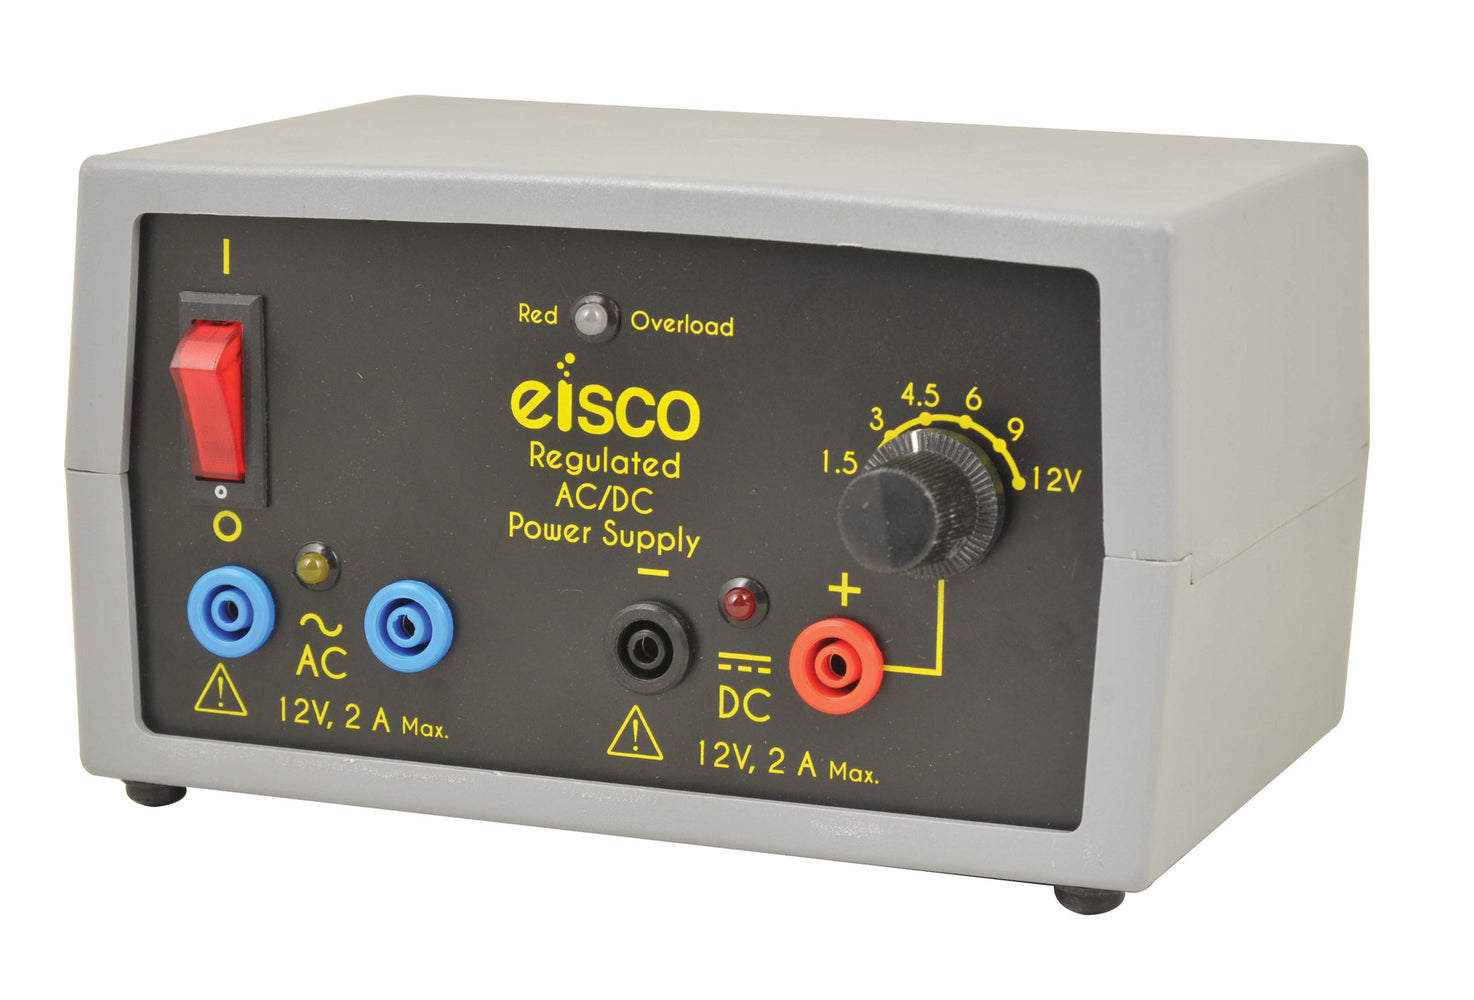 Power Supplies - Compact, Power Supplies Regulated AC/DC 12V - 2 Amp.